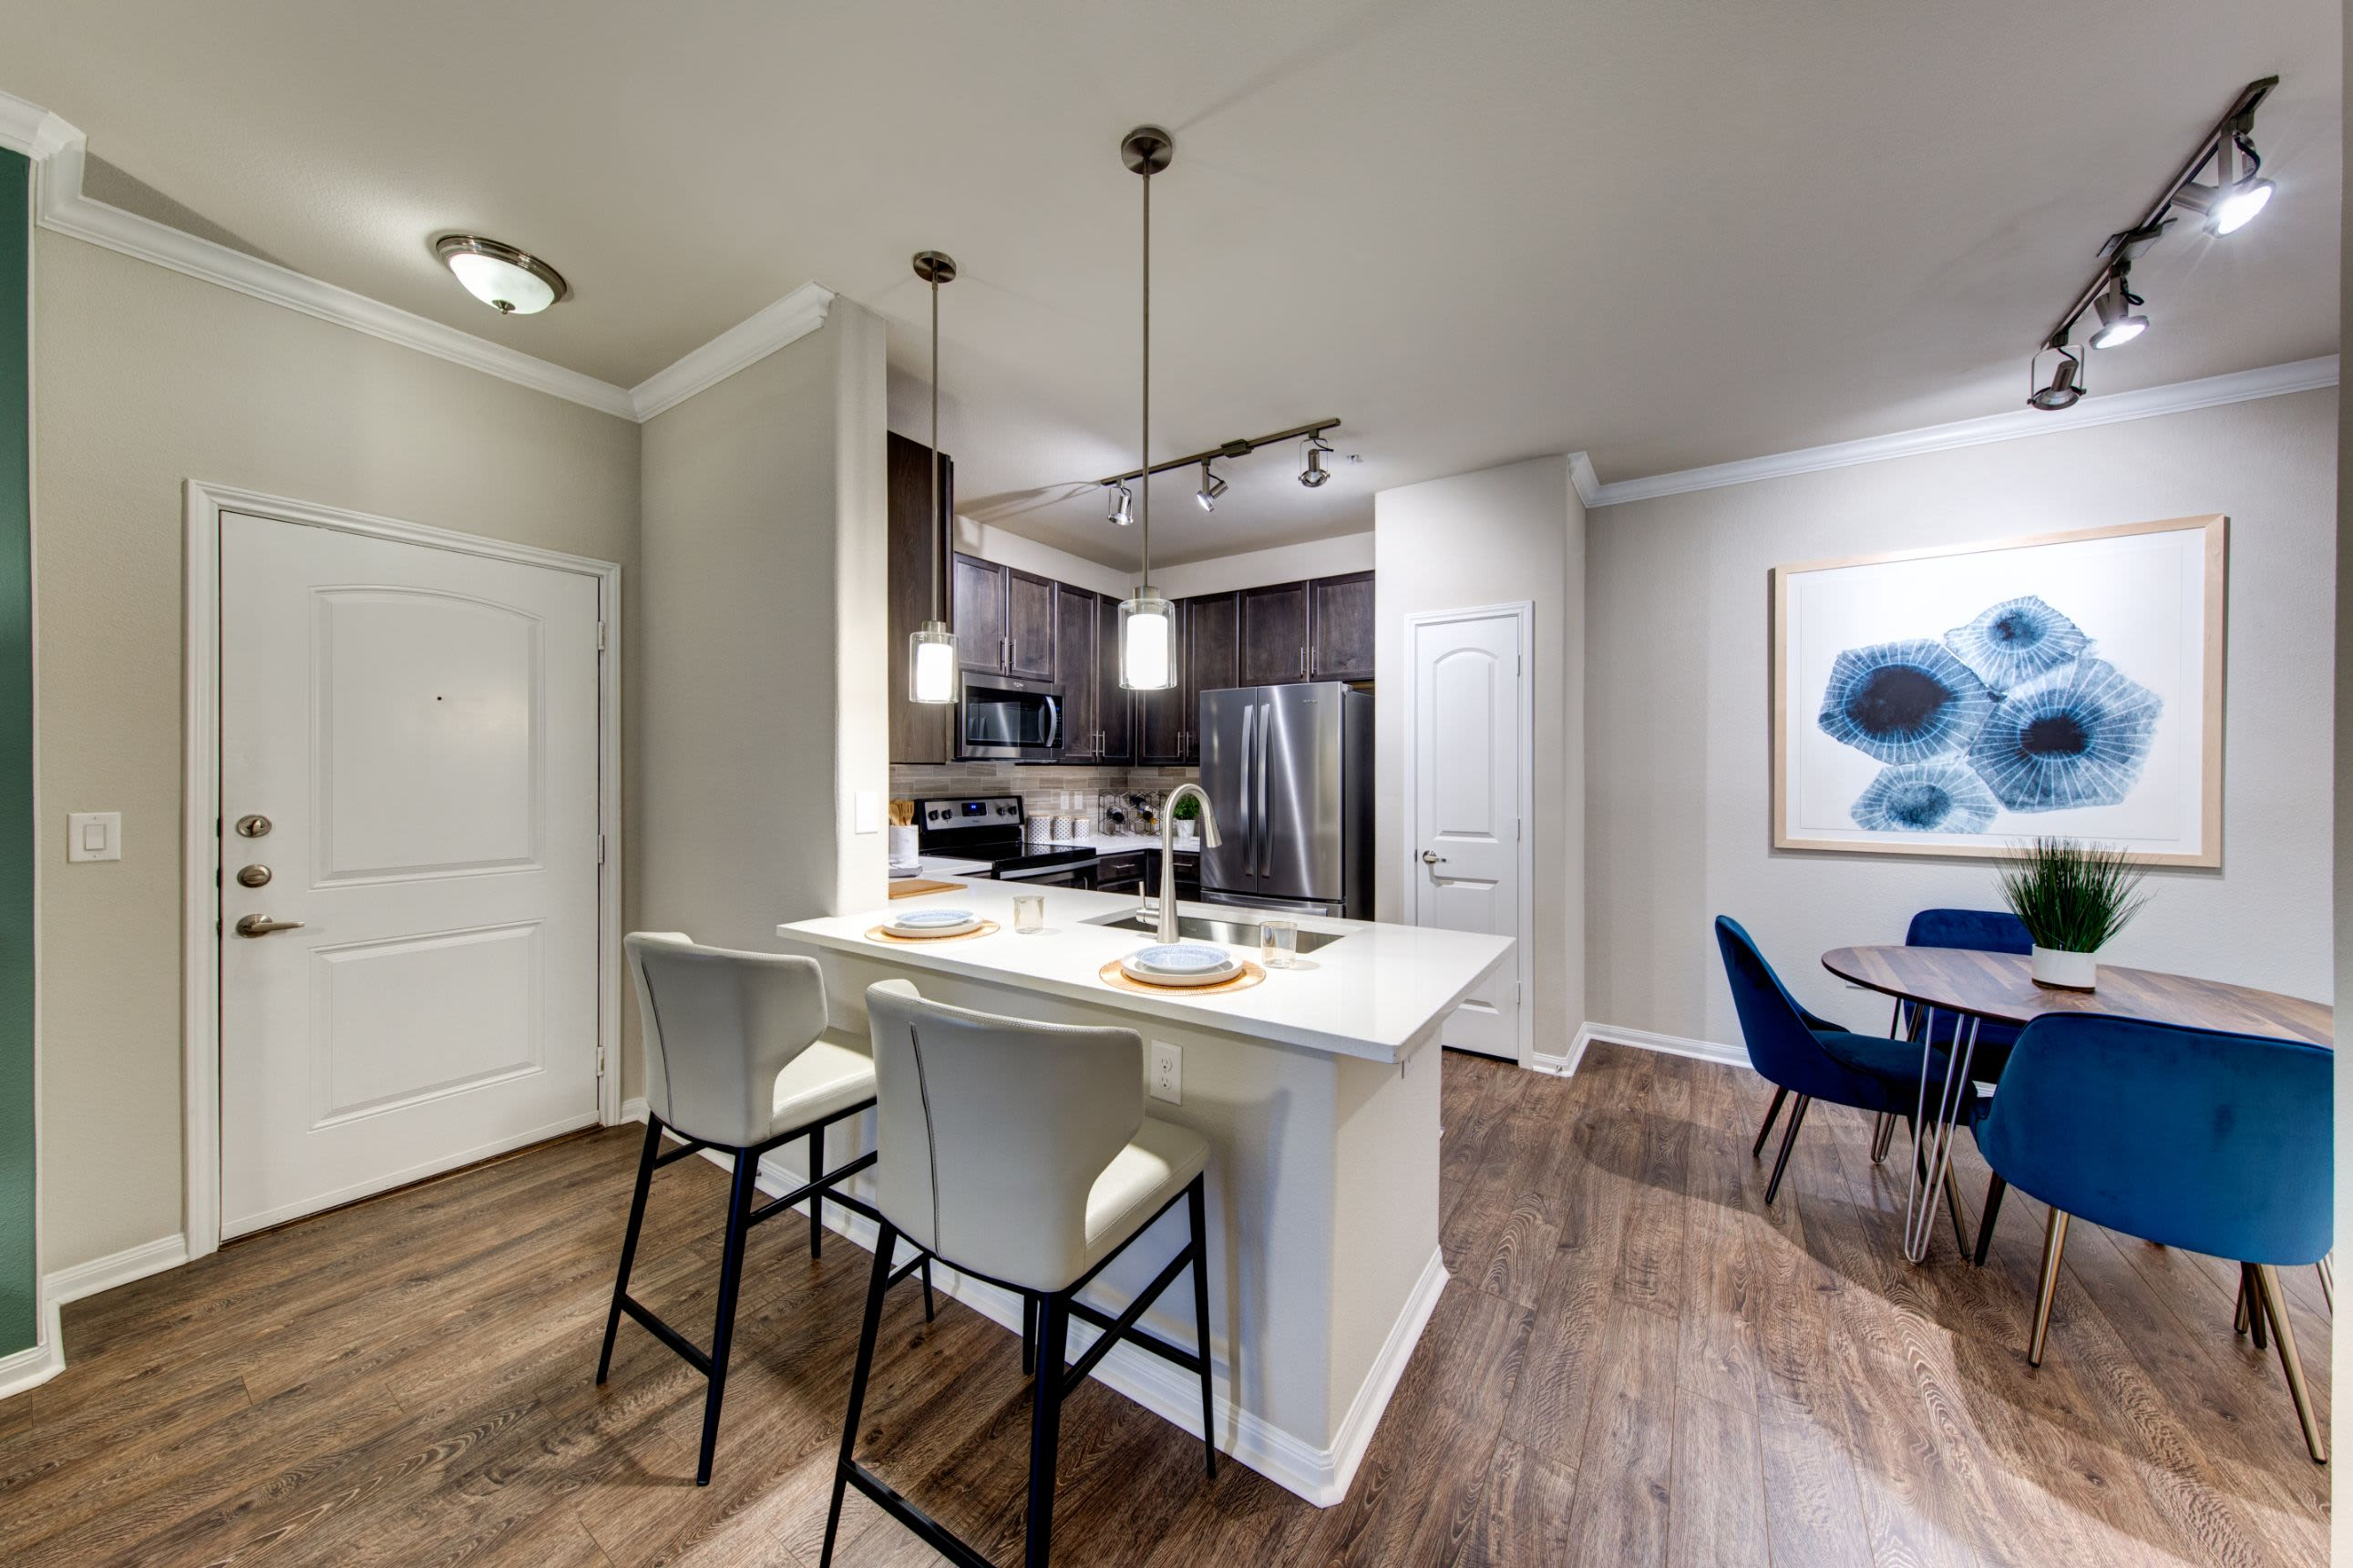 Kitchen with breakfast bar at Marquis at The Woodlands in Spring, Texas